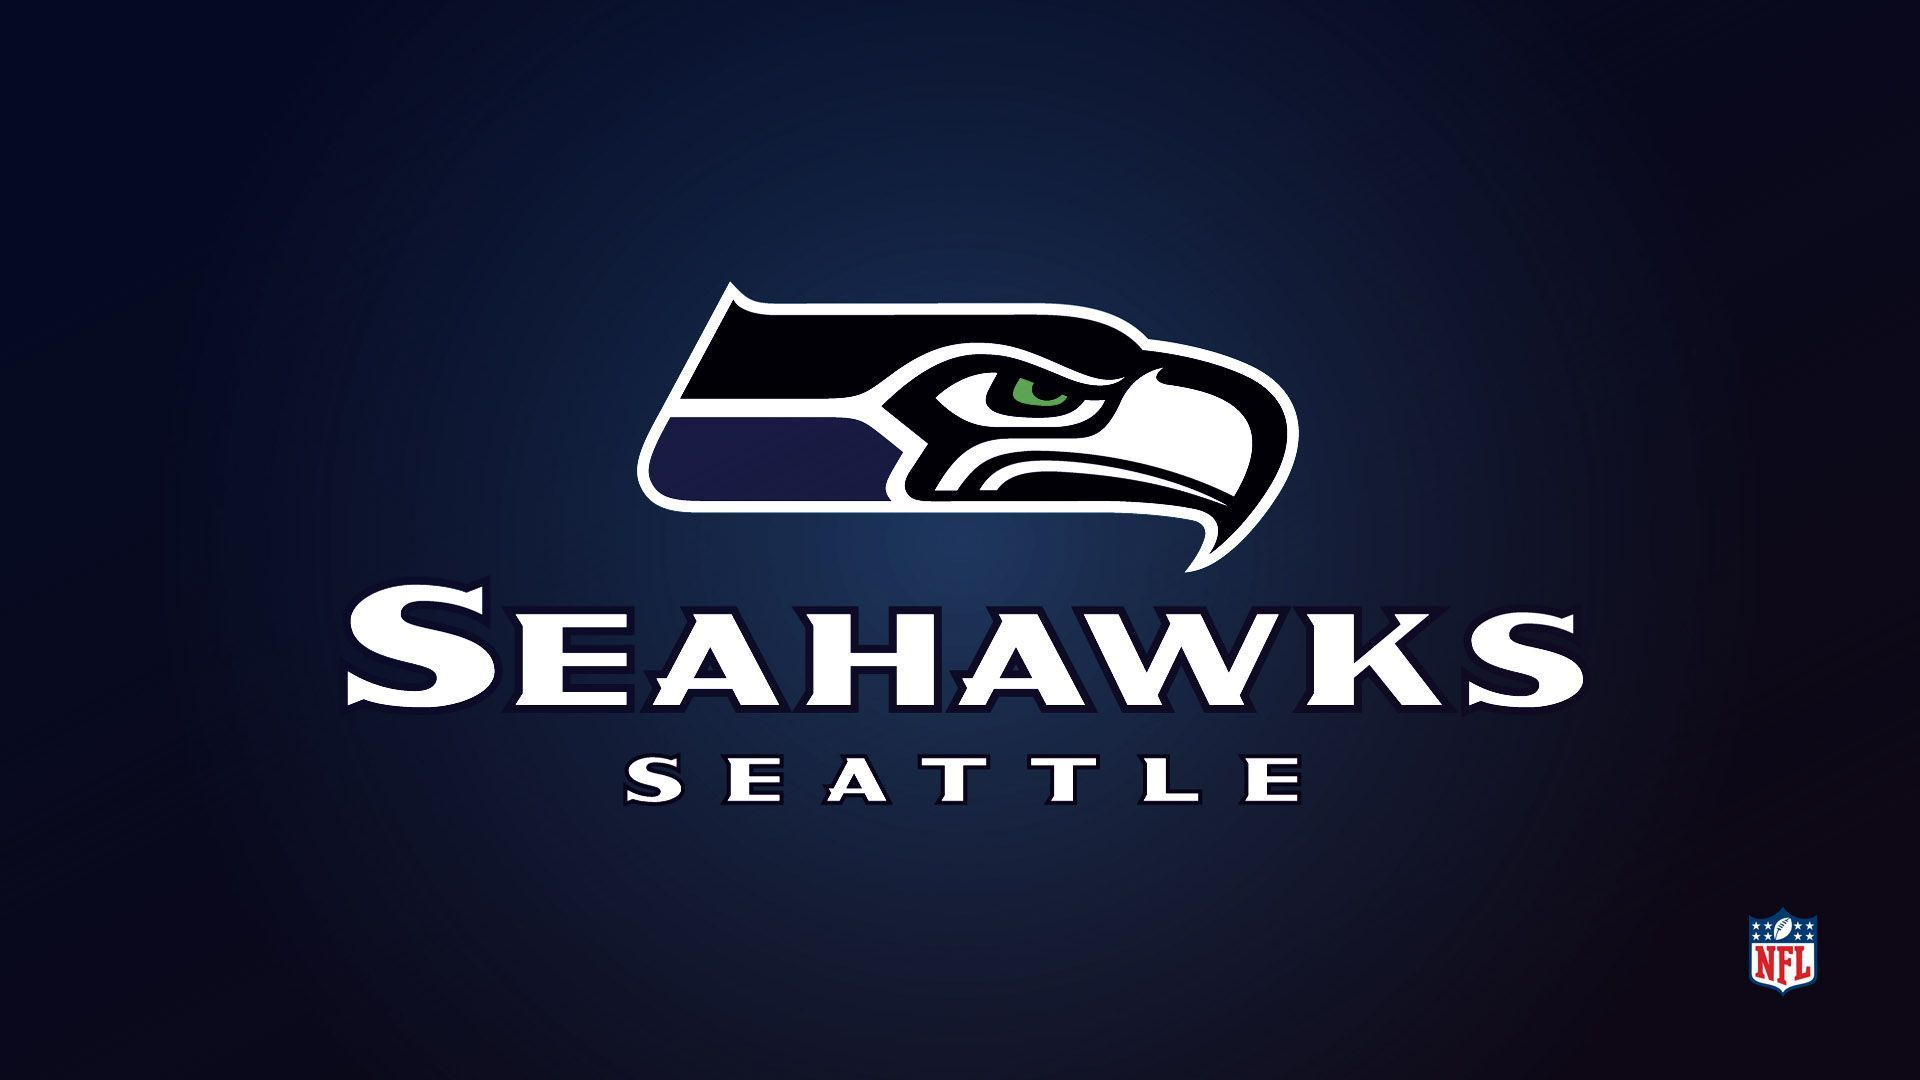 seahawks high resolution wallpaper - photo #7